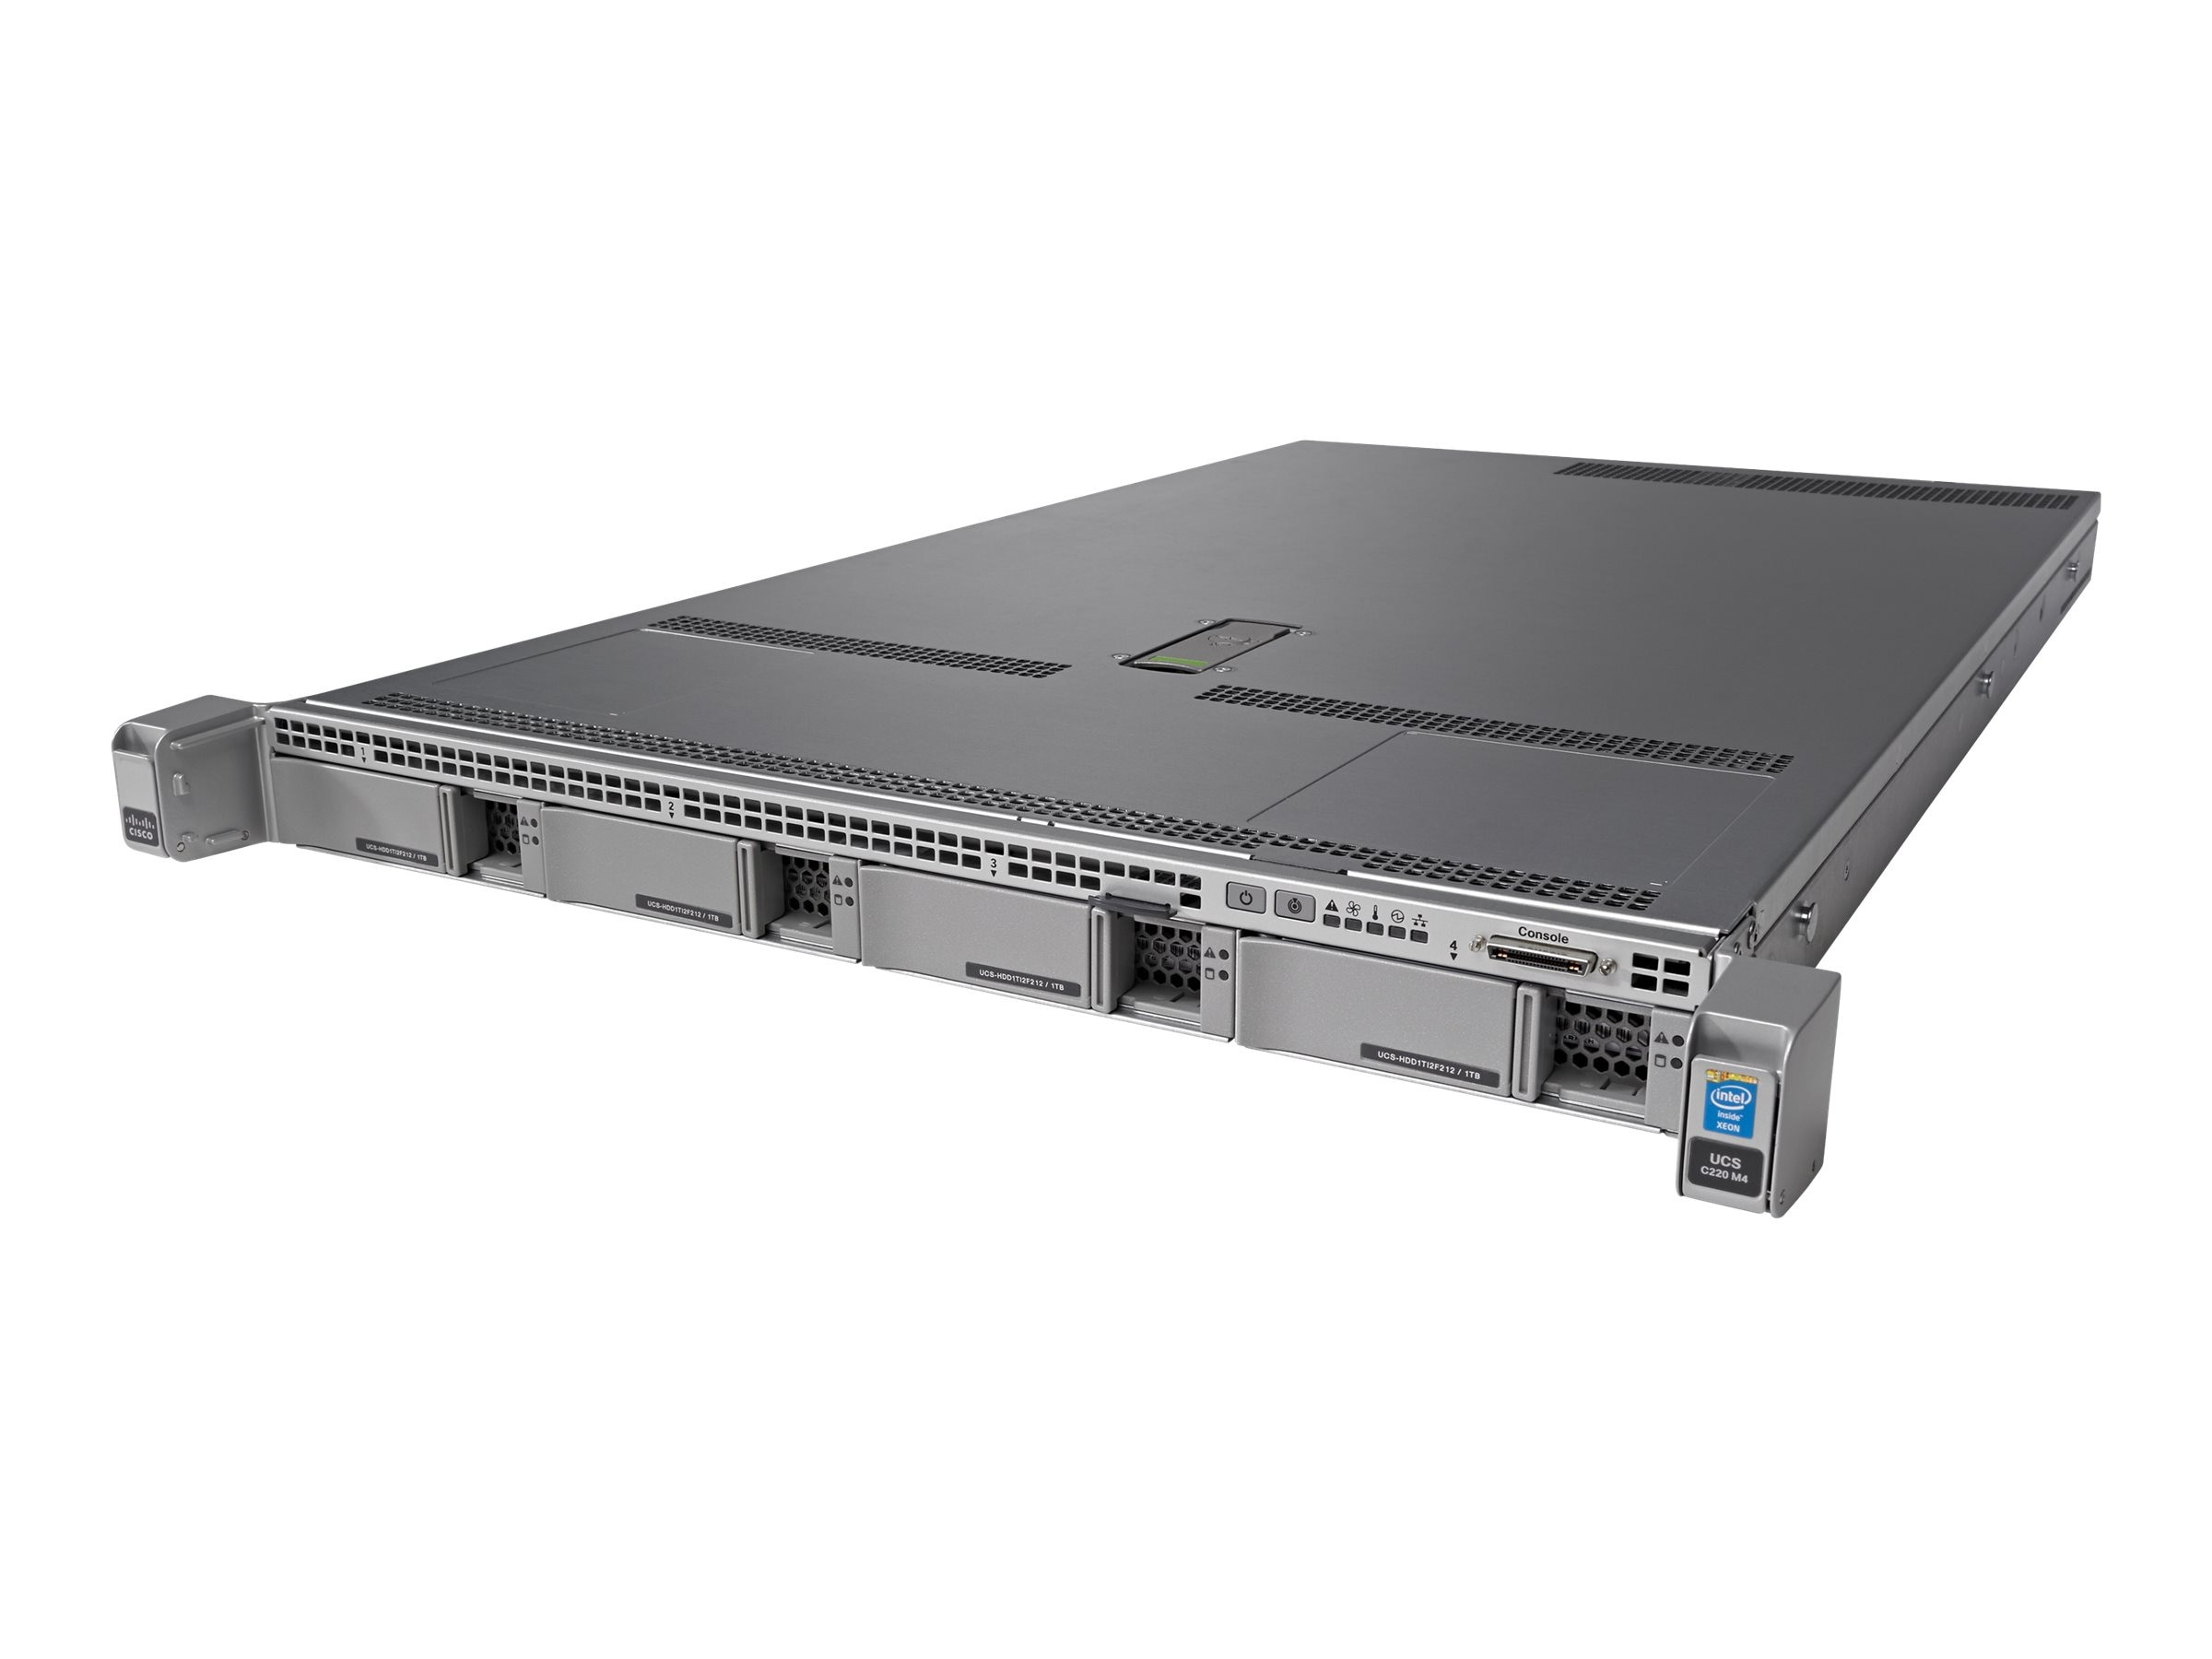 Cisco UCS Smart Play Select C220 M4S Standard 1 (2x)Xeon E5-2630 v3 64GB VIC1227, UCS-SPL-C220M4-S1, 20524231, Servers